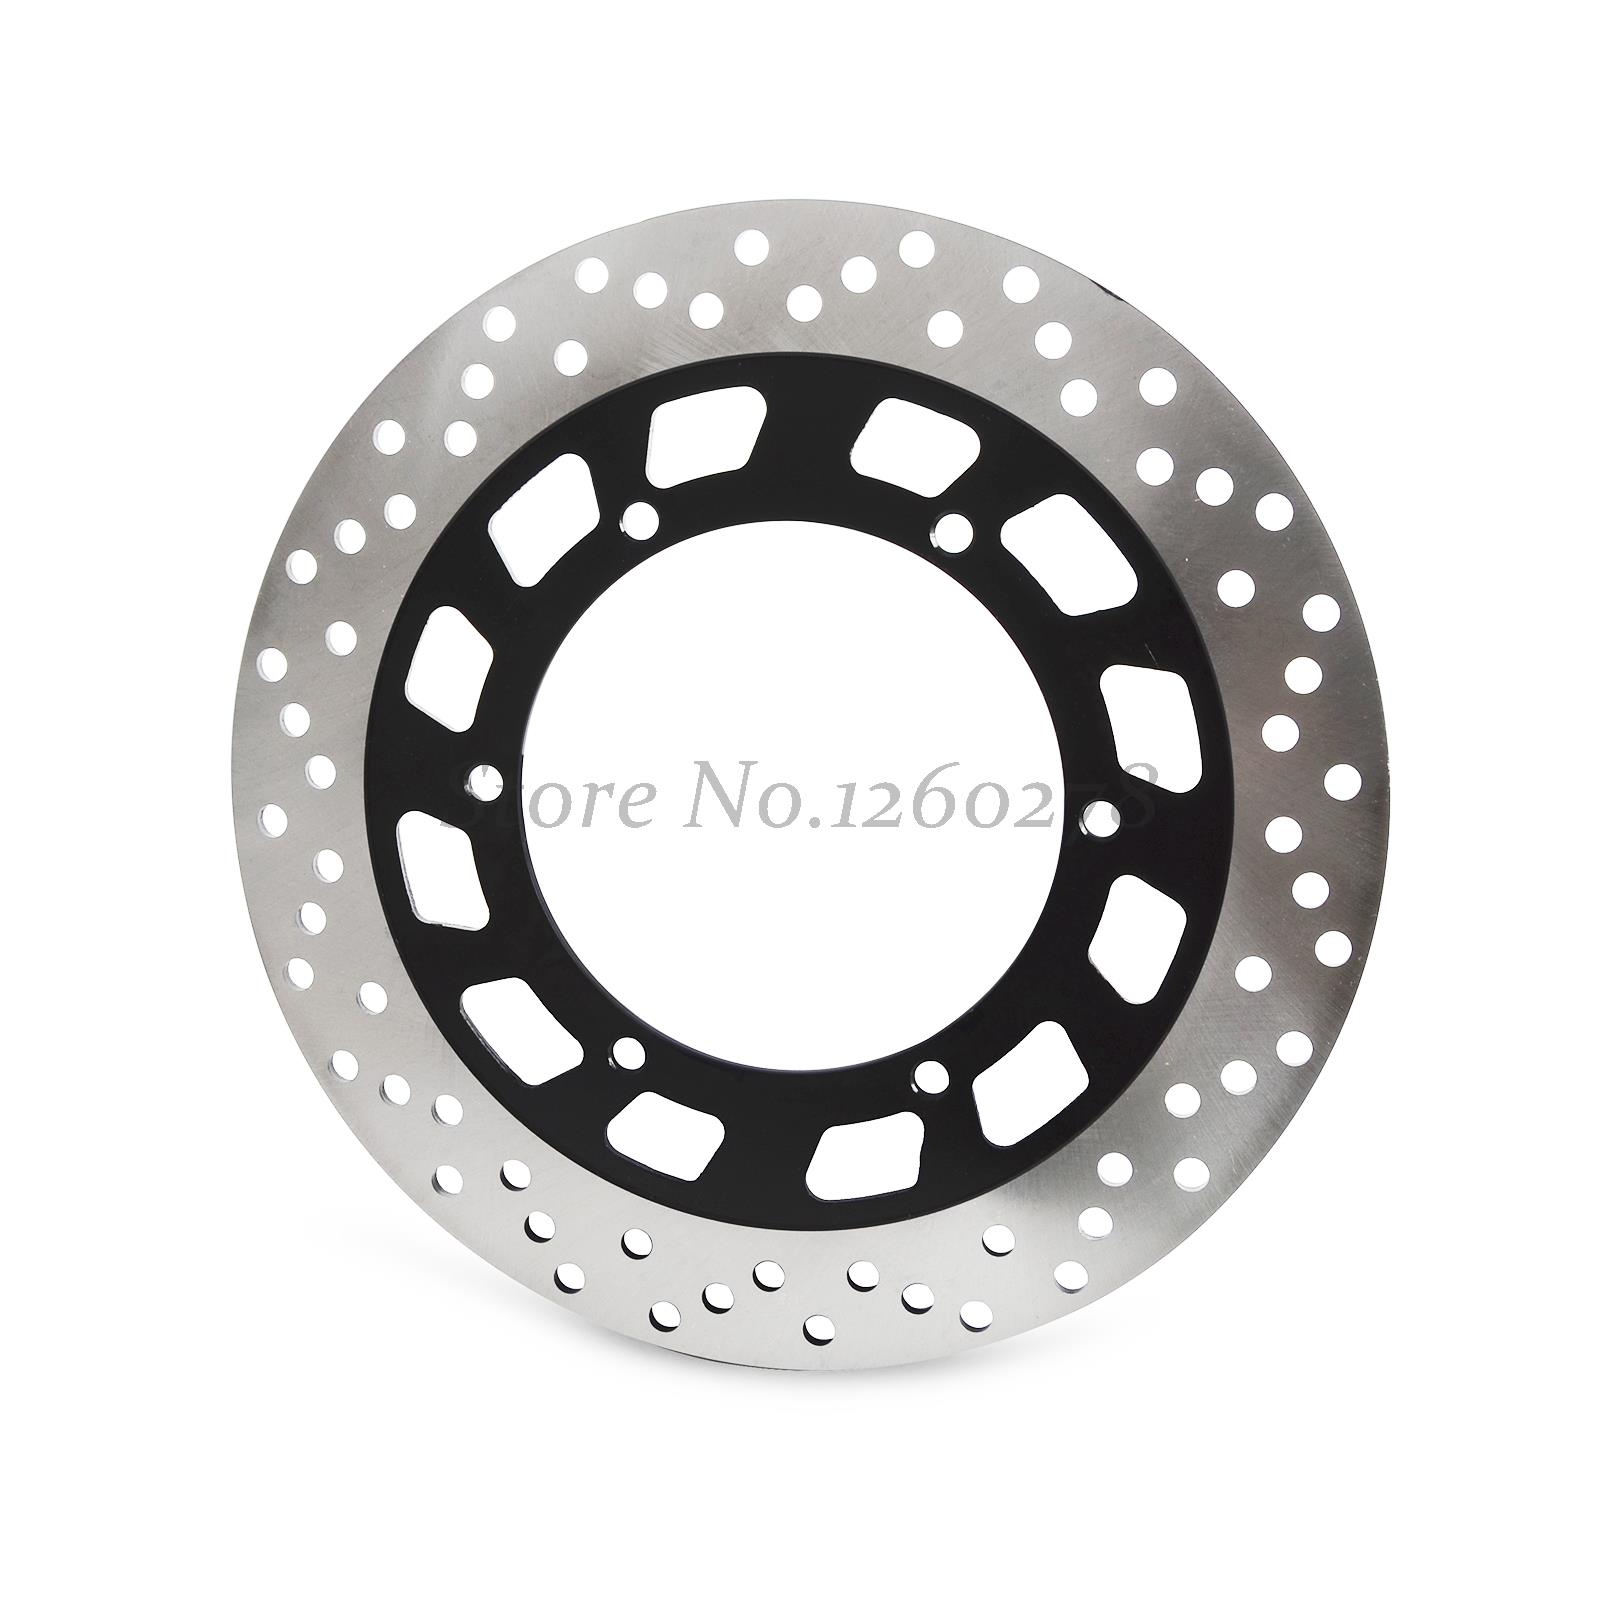 Motorcycle Front Brake Disc Rotor For Yamaha XV125 XV250 VIRAGO XVS 125 FJ1000 FJ1200 V MAX 1200 SRV250 TDR 125 mfs motor motorcycle part front rear brake discs rotor for yamaha yzf r6 2003 2004 2005 yzfr6 03 04 05 gold